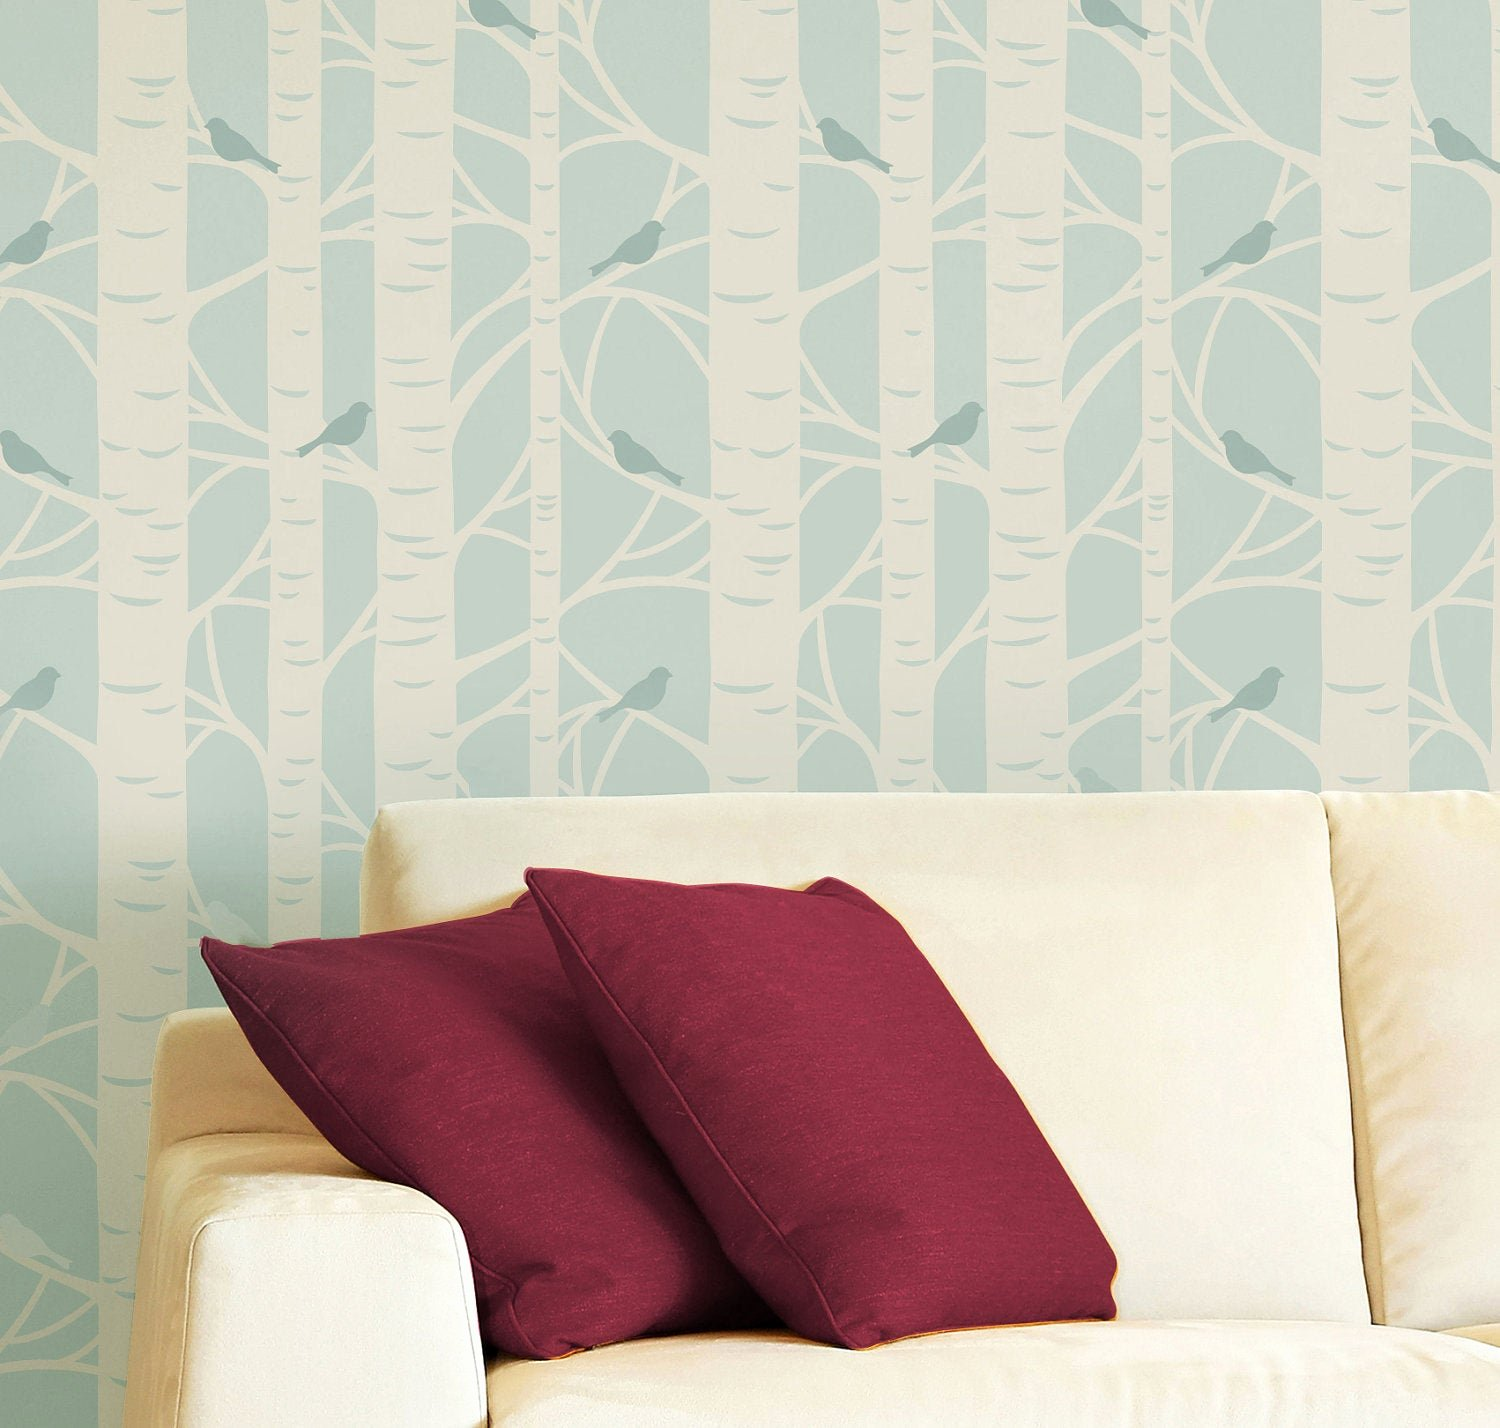 Tree Stencils for Walls Free Fresh Items Similar to Birch Tree Wall Stencils Wall Stencil